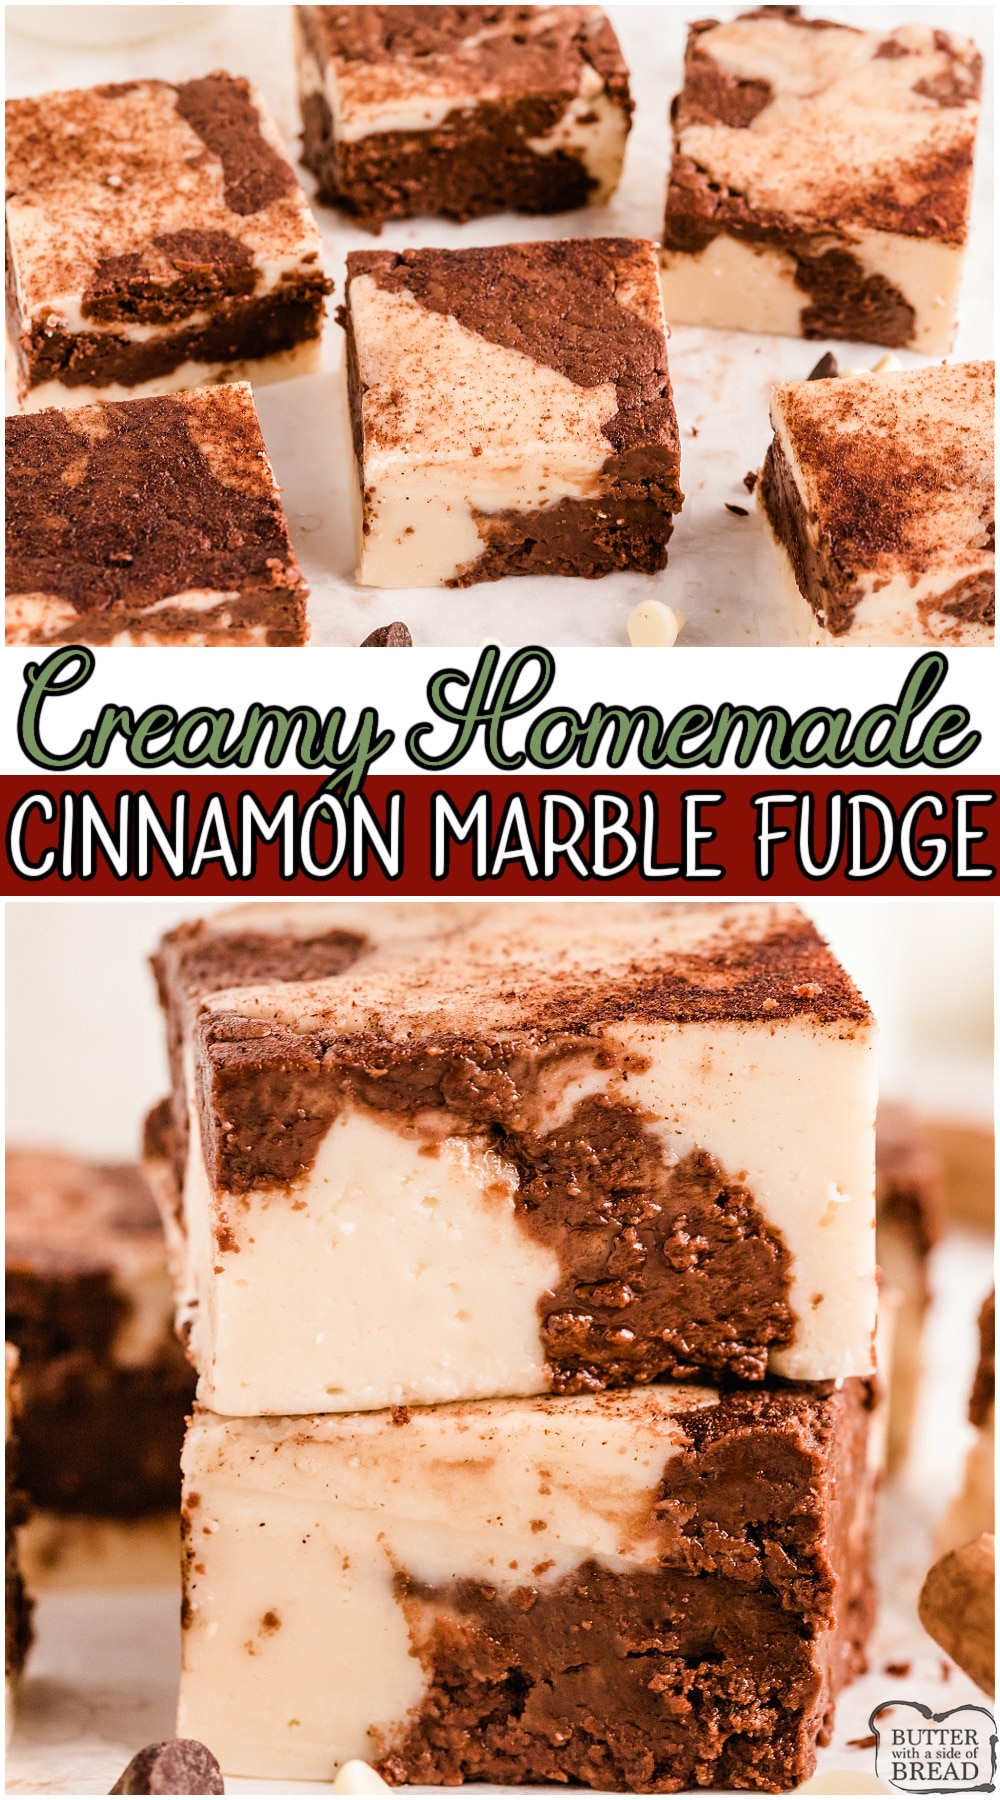 Cinnamon marble fudge is a creamy, deliciously swirled fudge recipe with lovely chocolate cinnamon & vanilla flavors! Homemade cinnamon fudge made with sugar, butter, marshmallow creme & cinnamon! #fudge #cinnamon #swirl #marble #dessert #homemade #easyrecipe from BUTTER WITH A SIDE OF BREAD